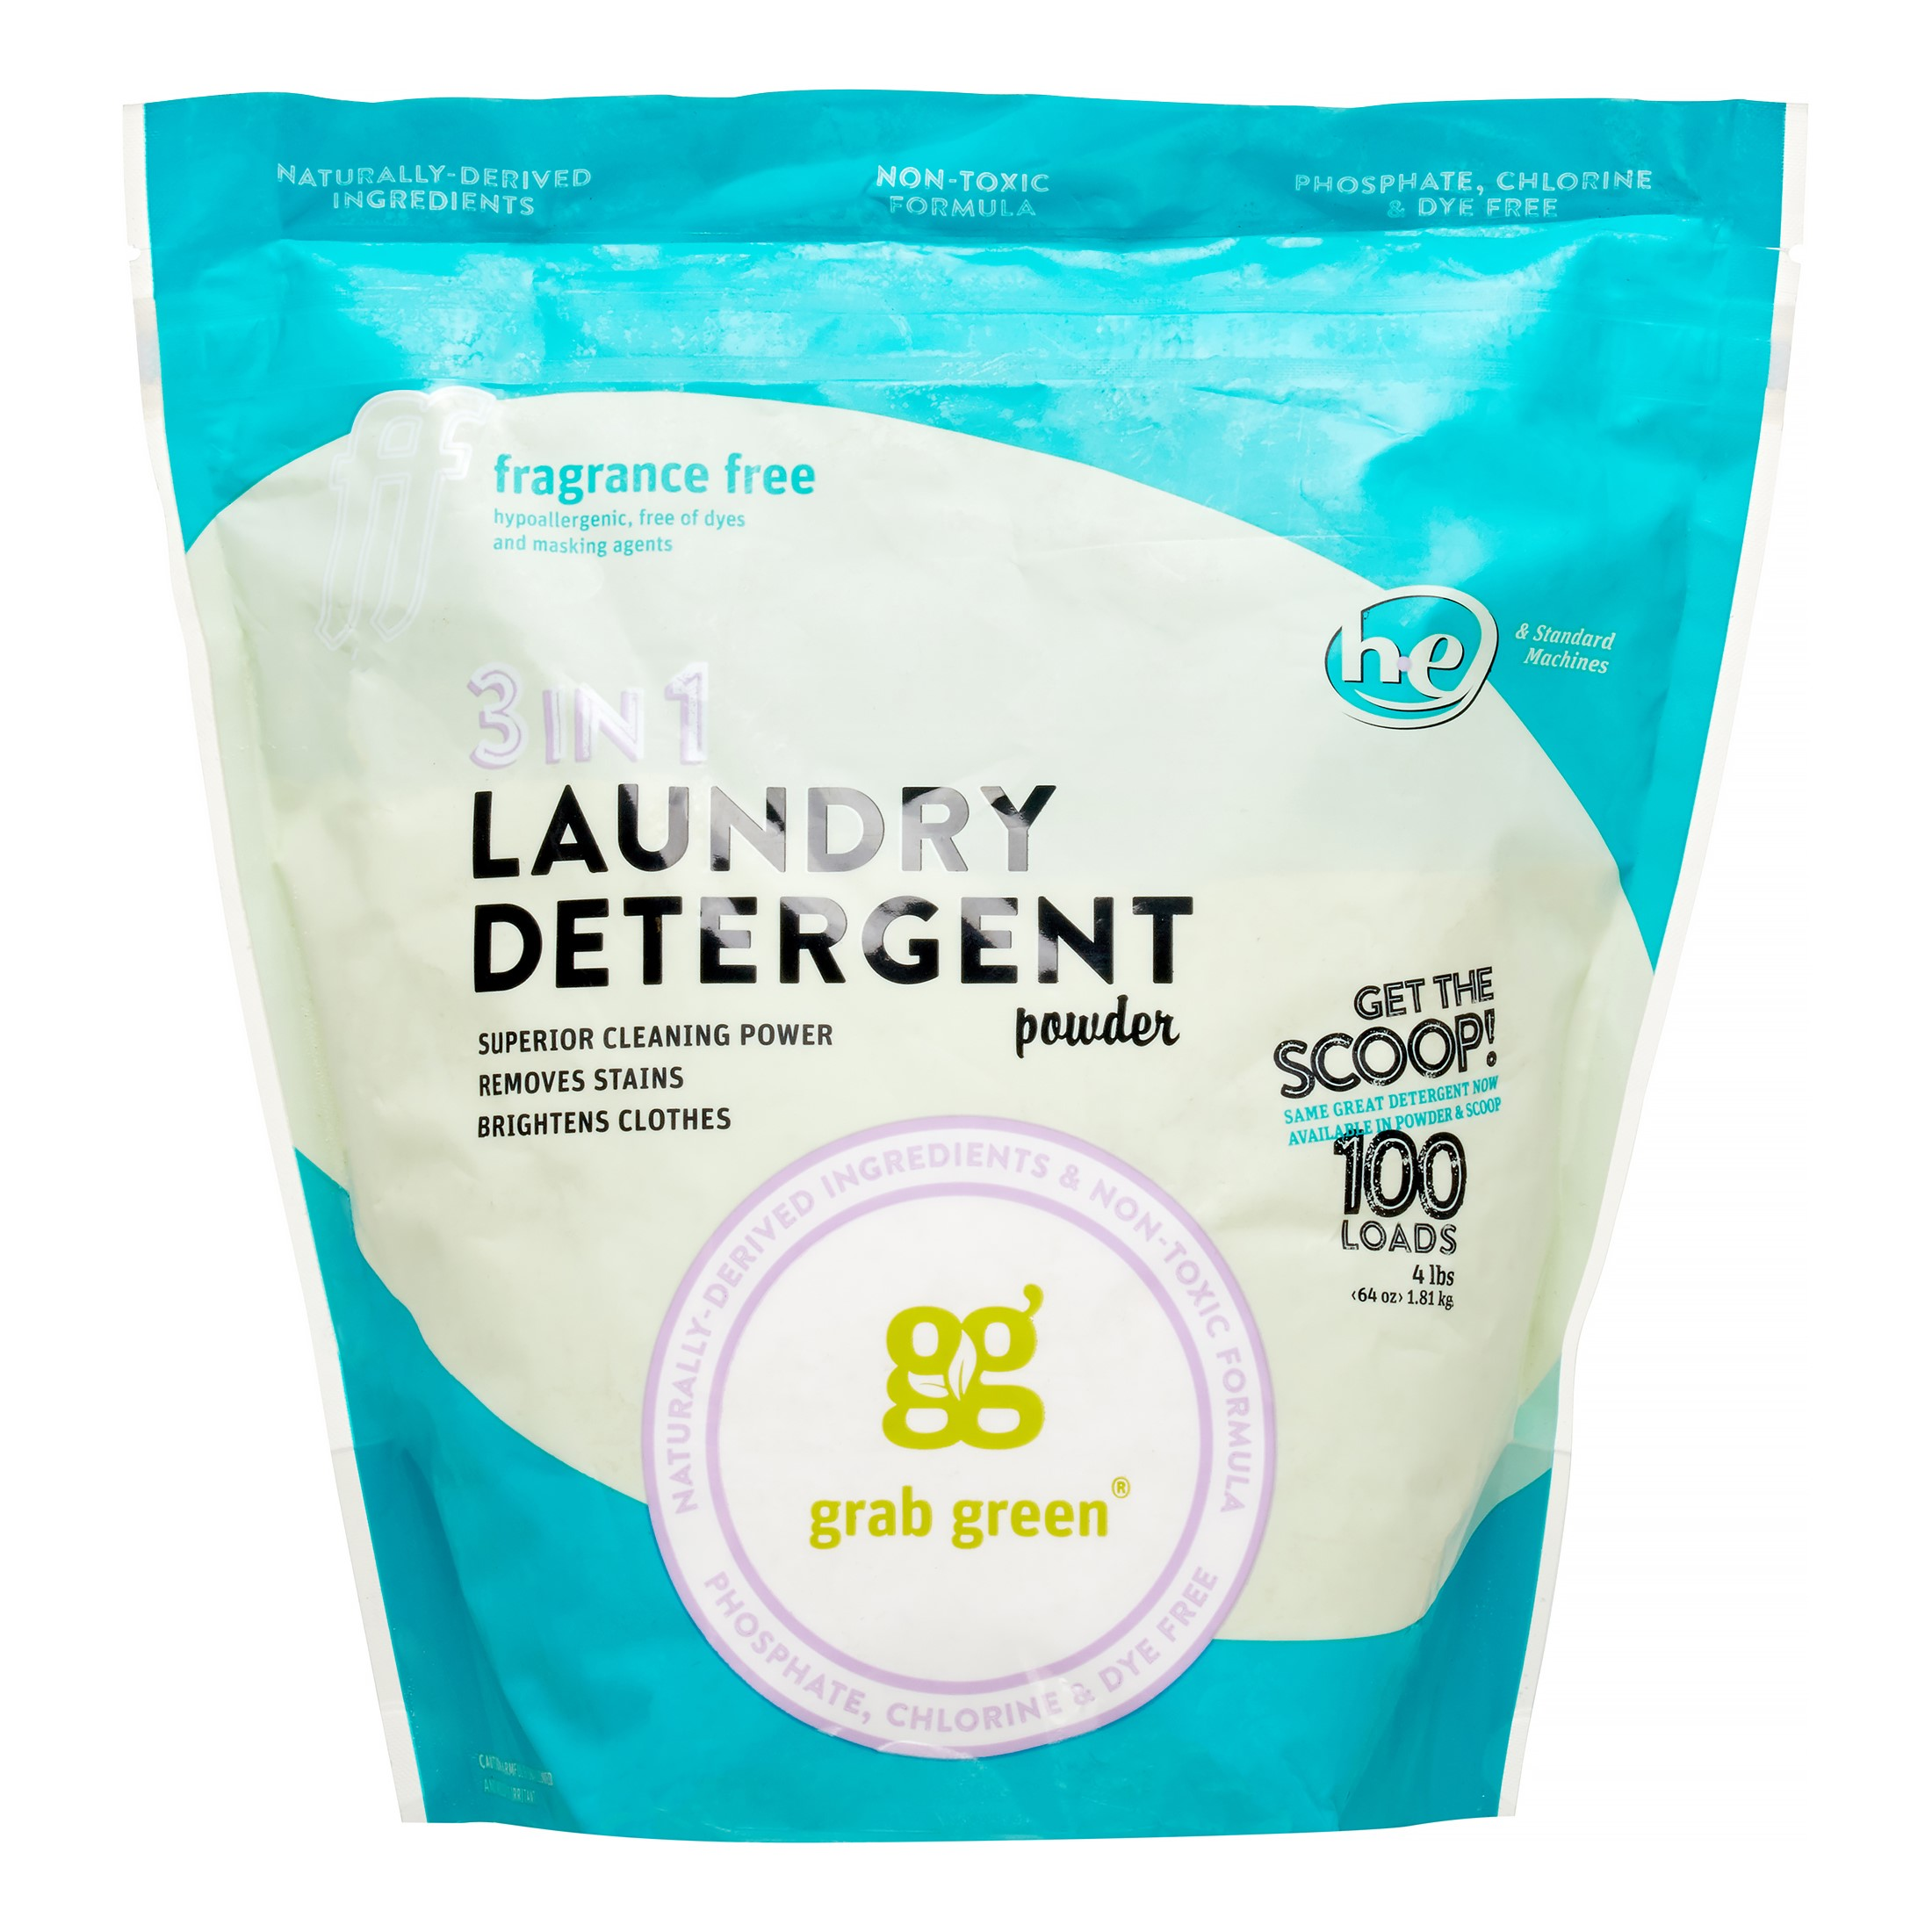 Grab Green 3 in 1 Laundry Detergent, Fragrance Free, 100 Loads